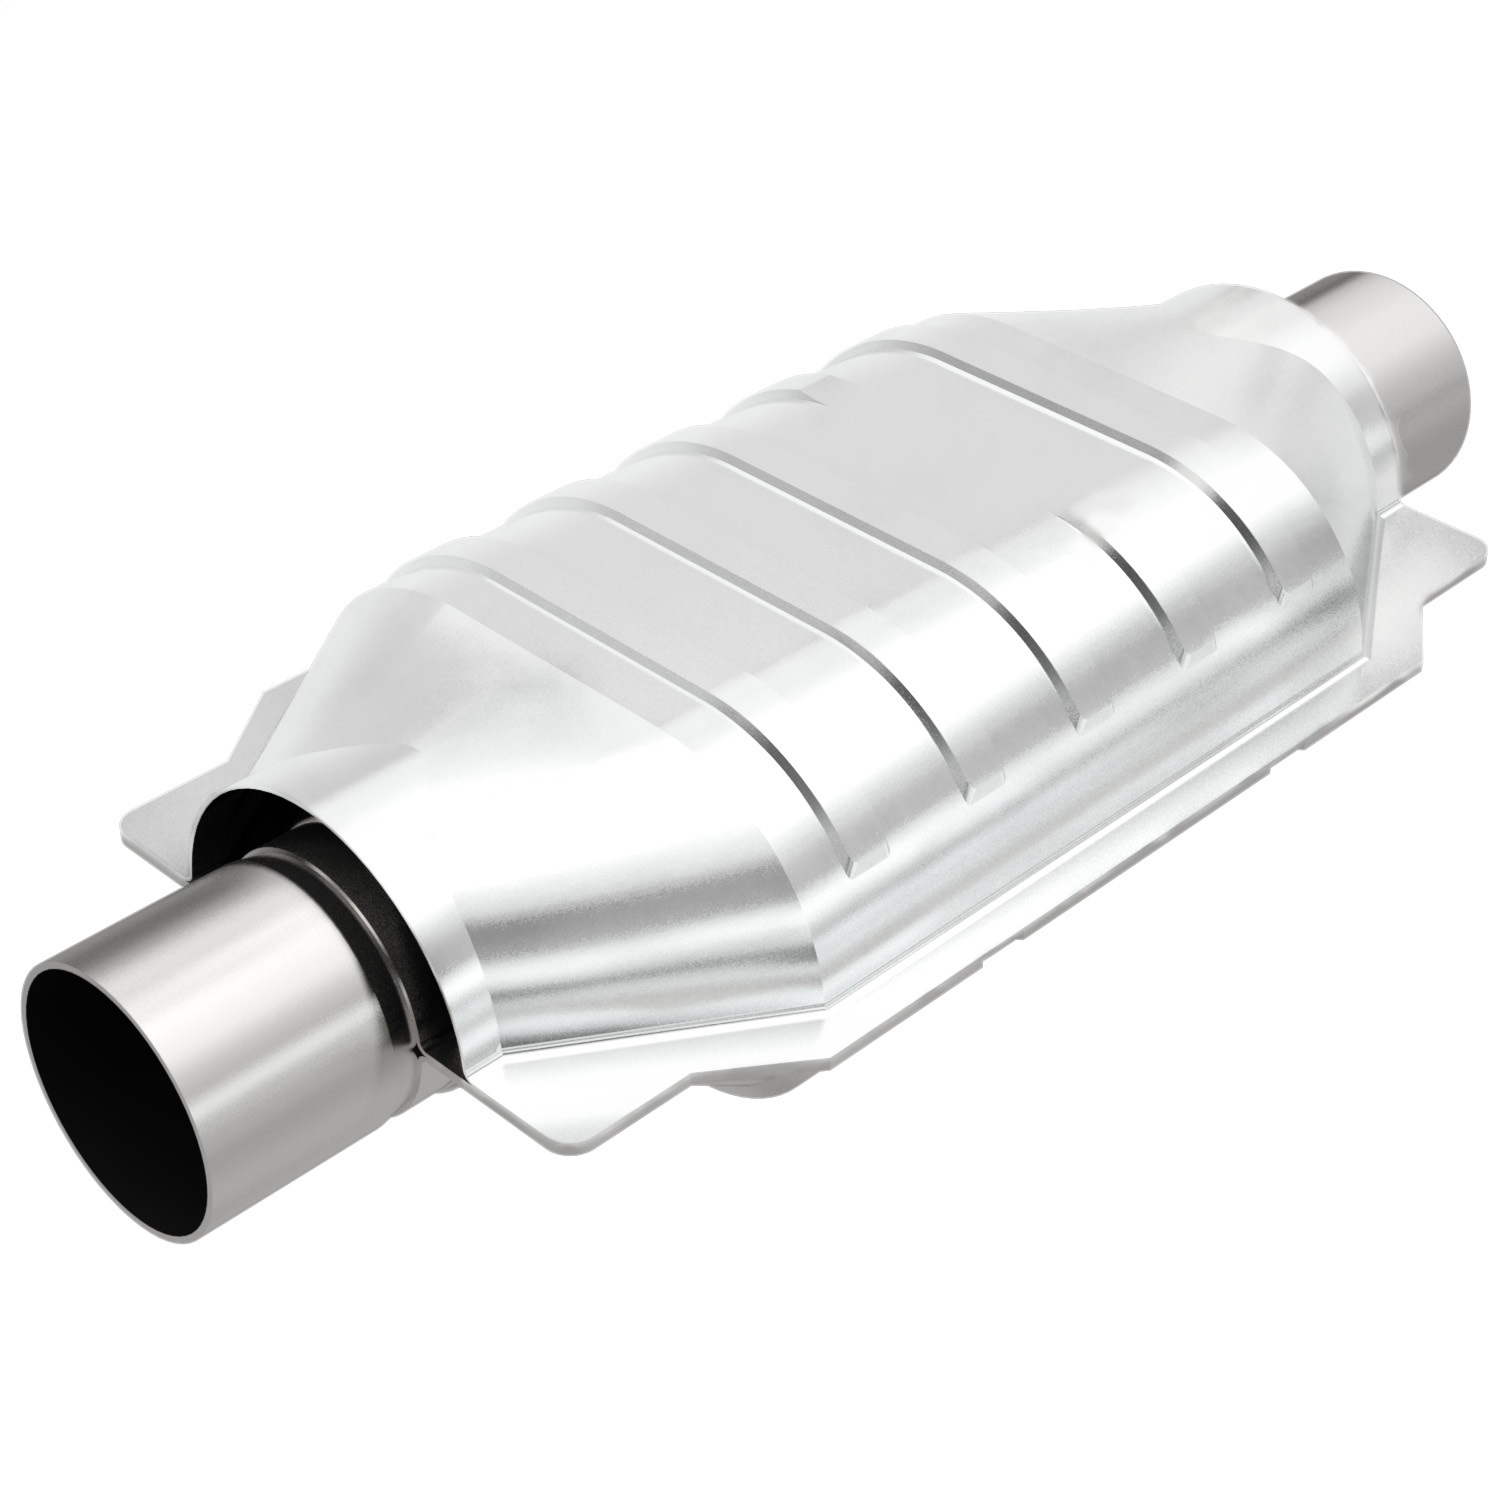 MagnaFlow Exhaust Products Catalytic Converter (459009)